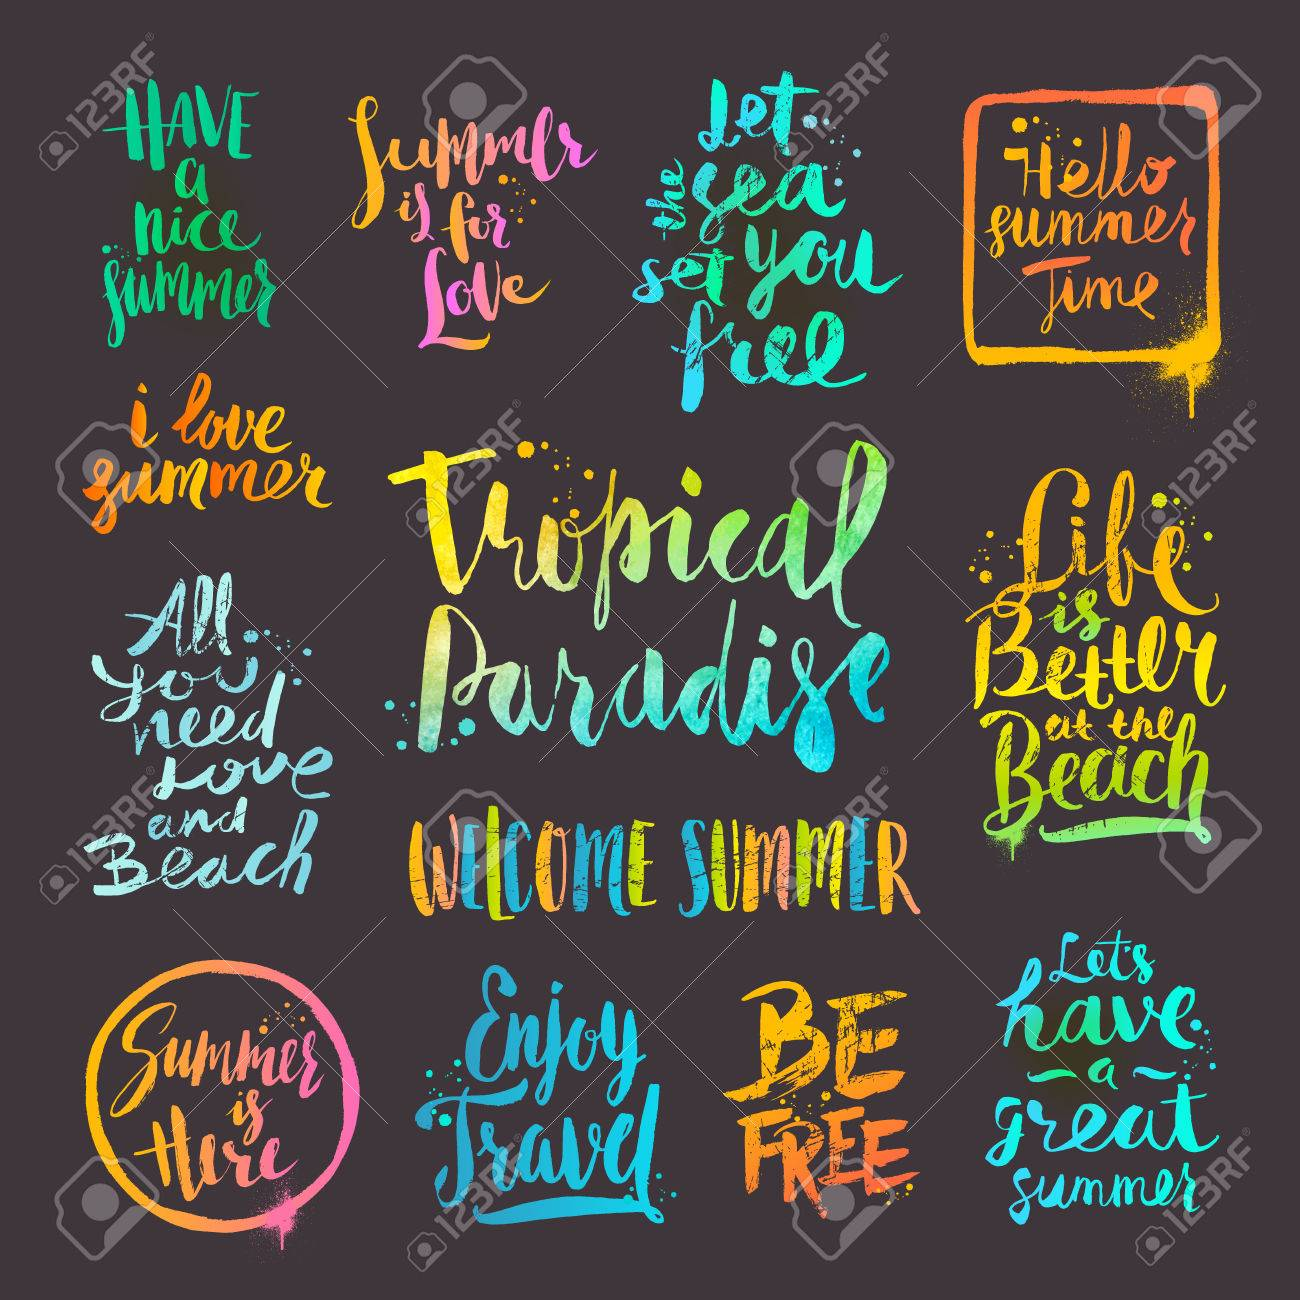 Summer Holidays And Vacation Quotes Phrases And Greetings Set